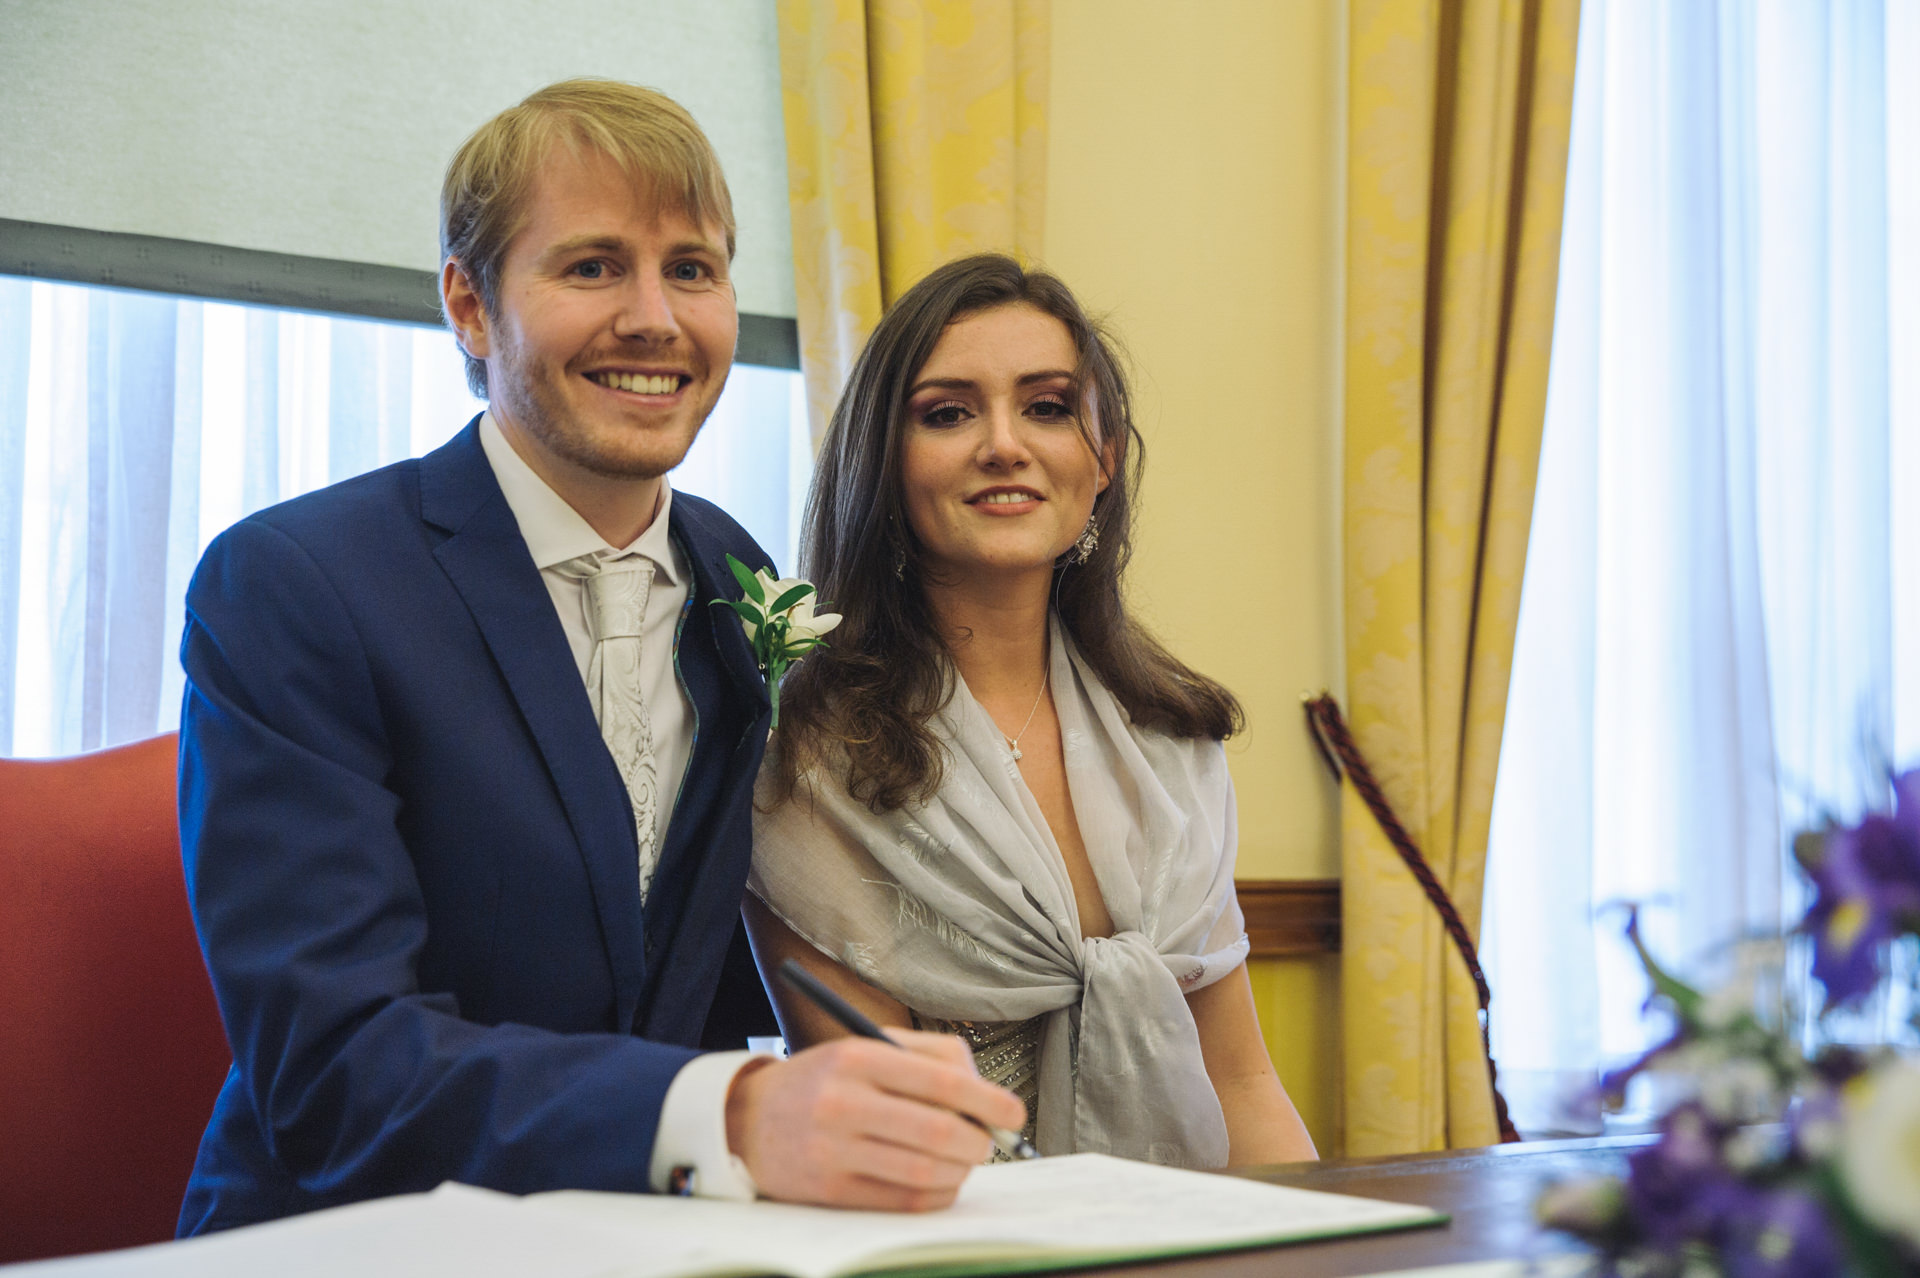 islington town hall wedding signing certificate